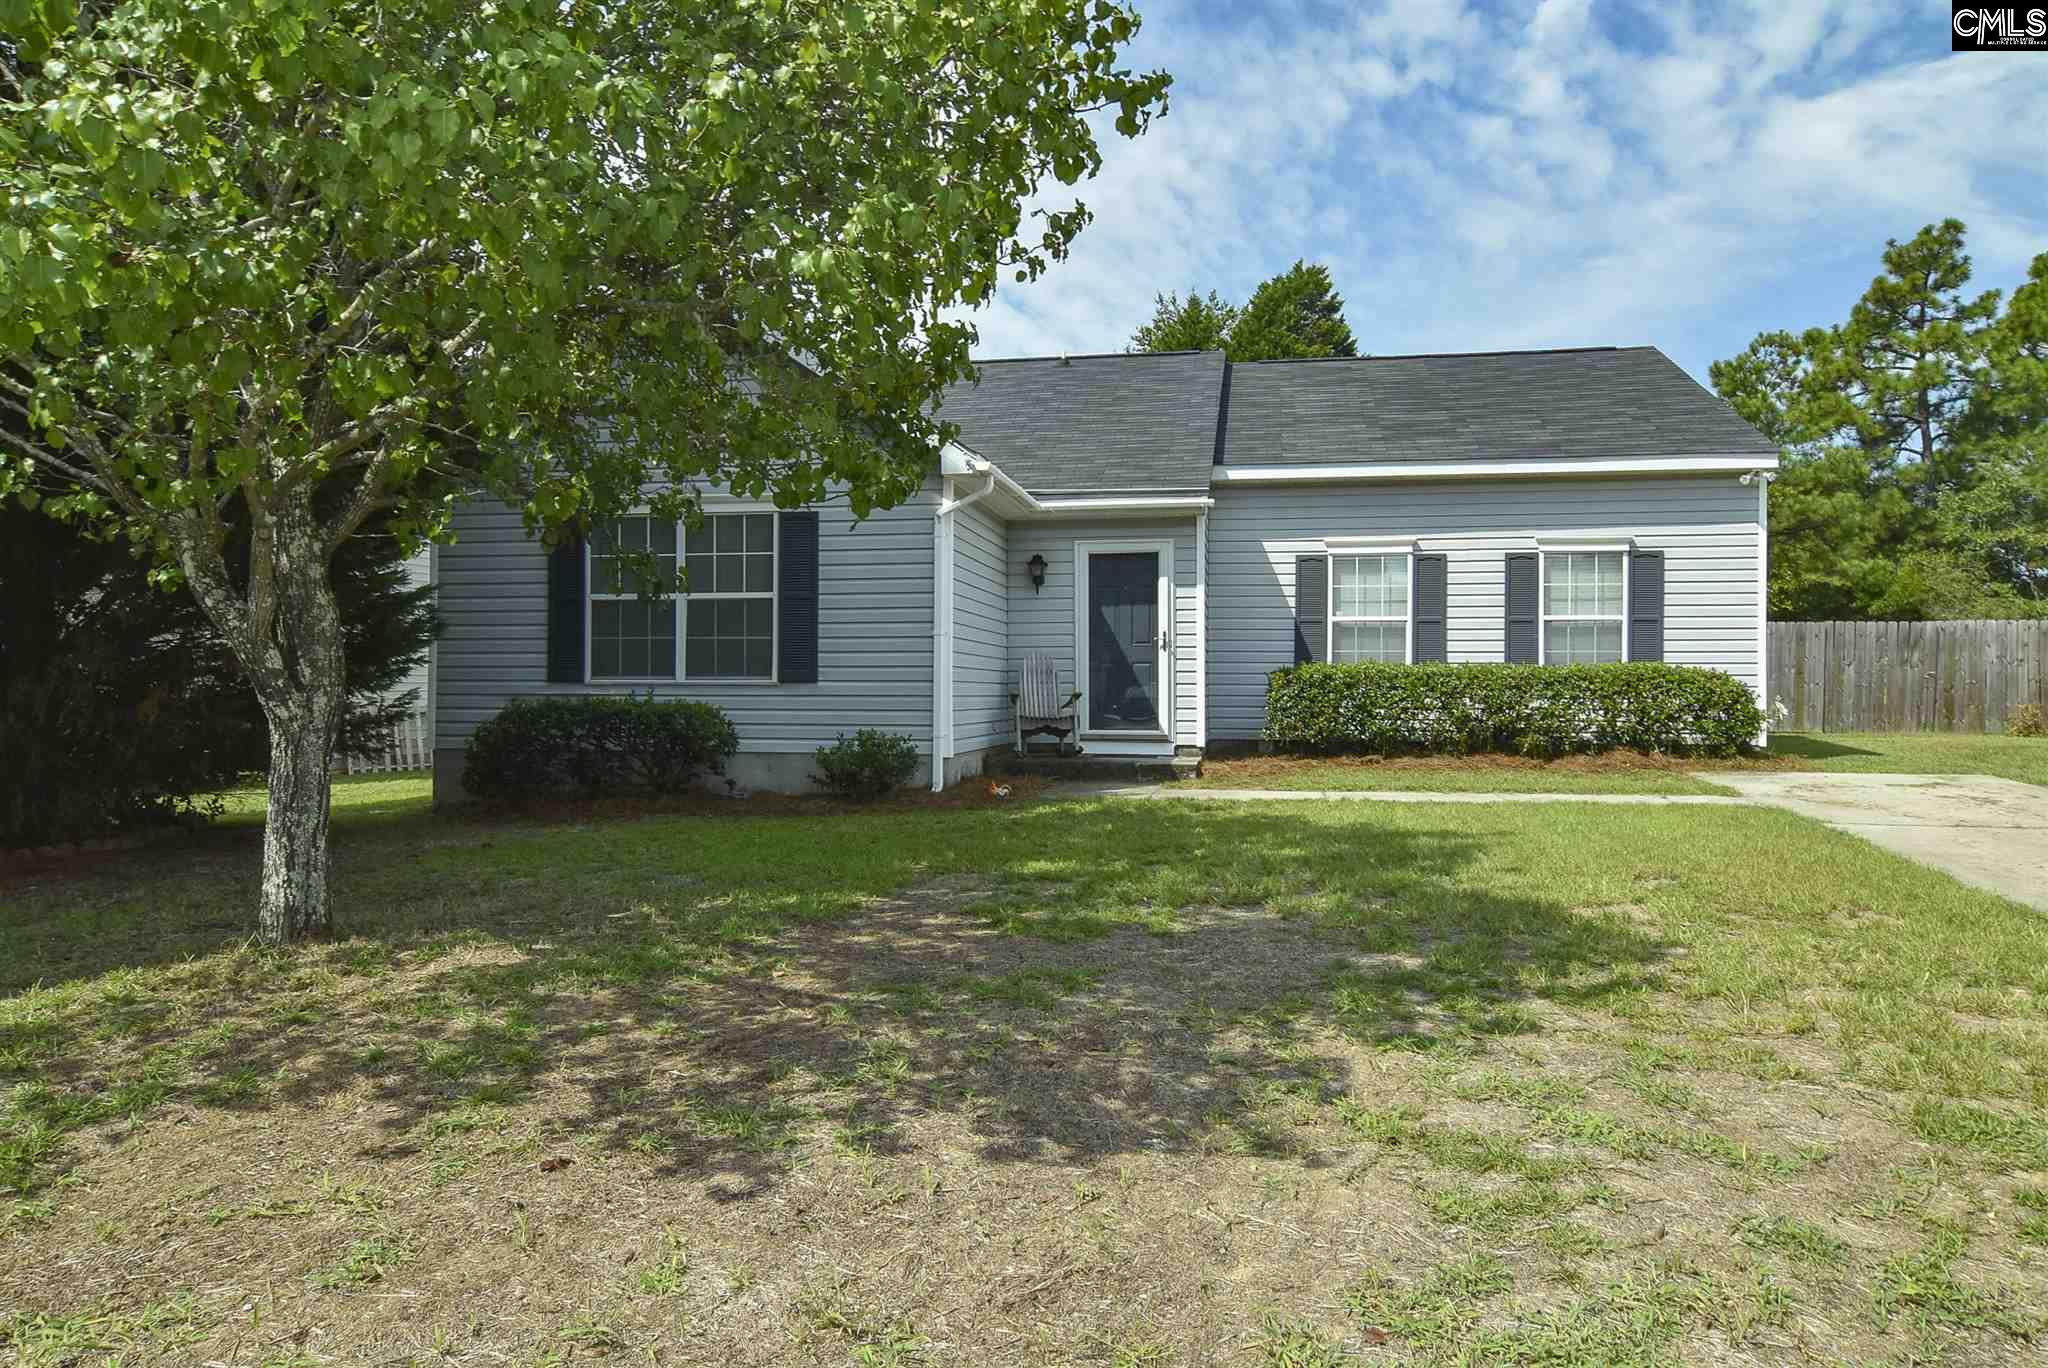 221 Pebble Creek Dr West Columbia, SC 29170